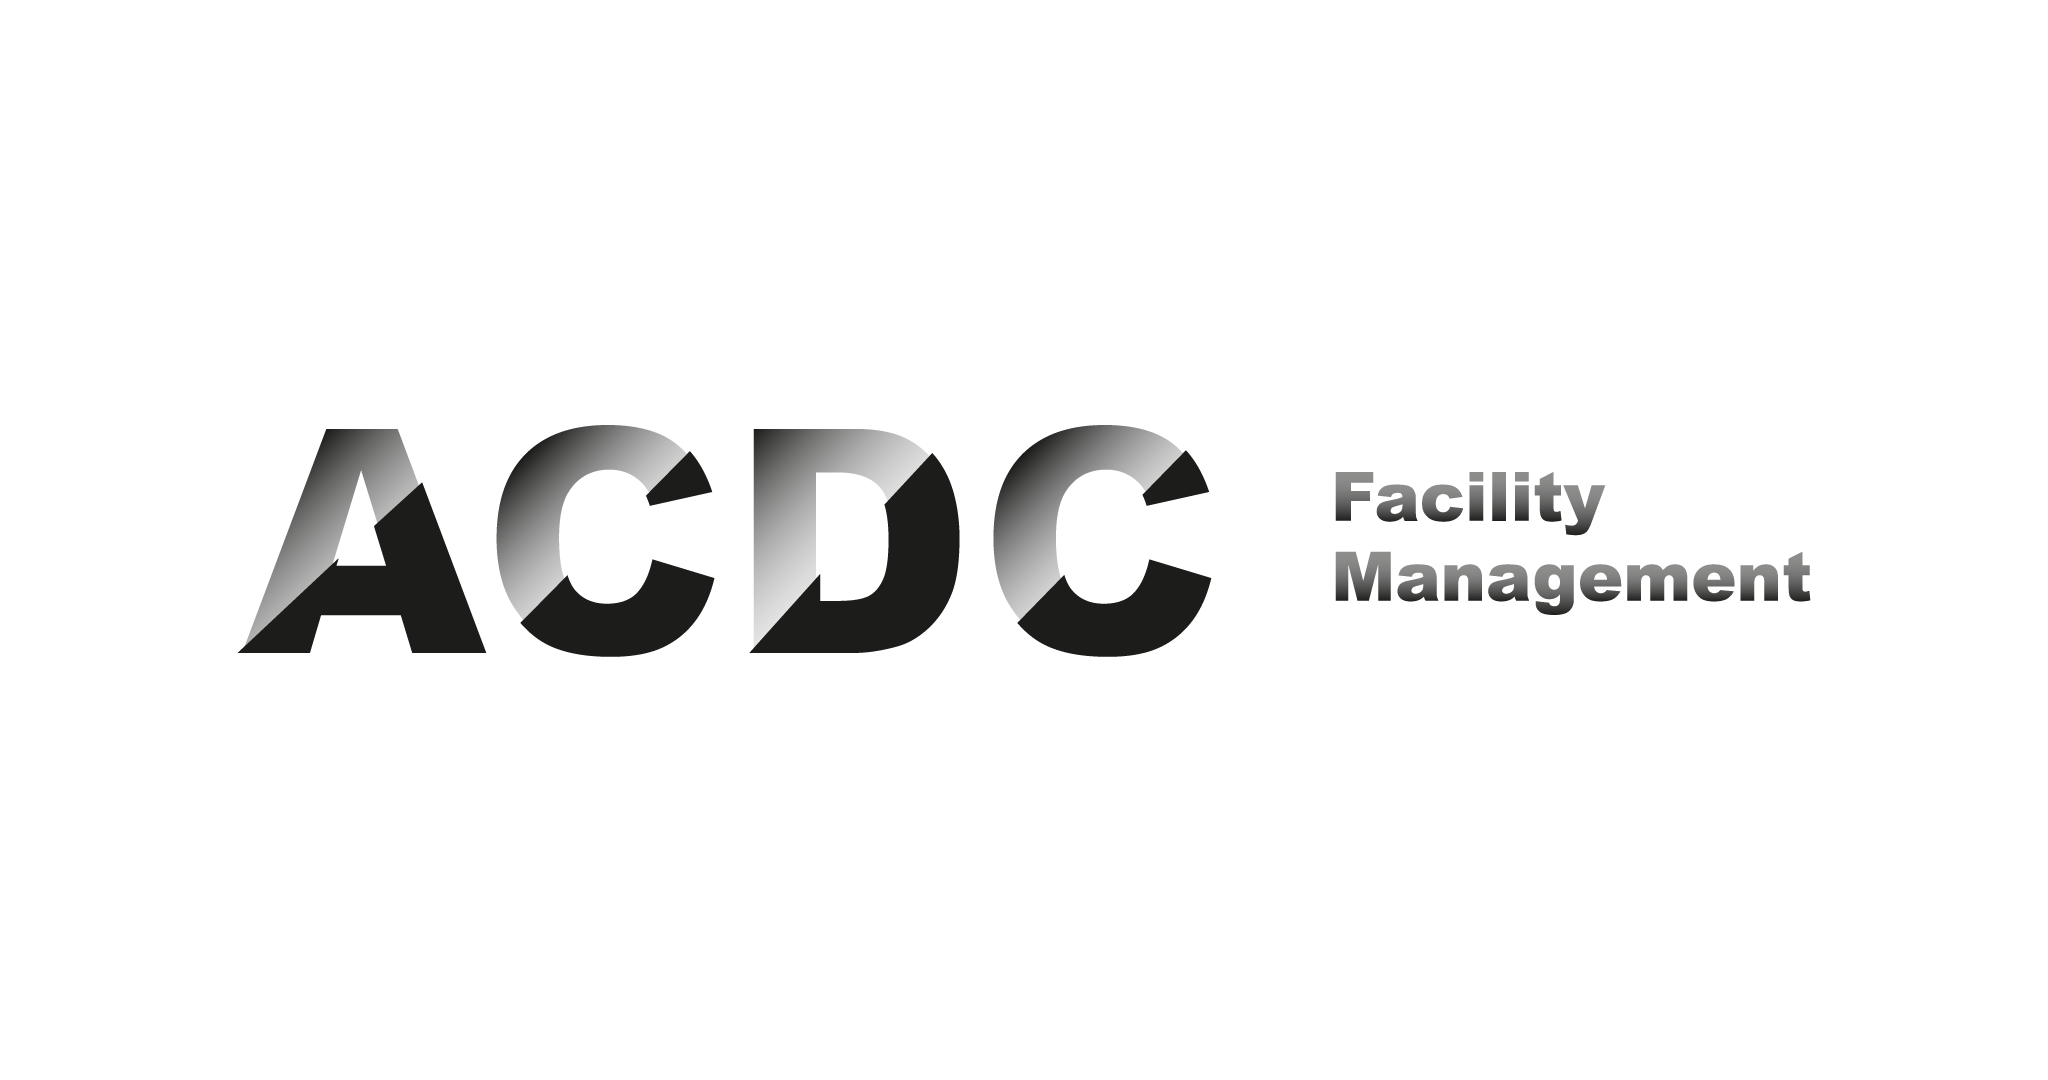 acdc facility management logo branding